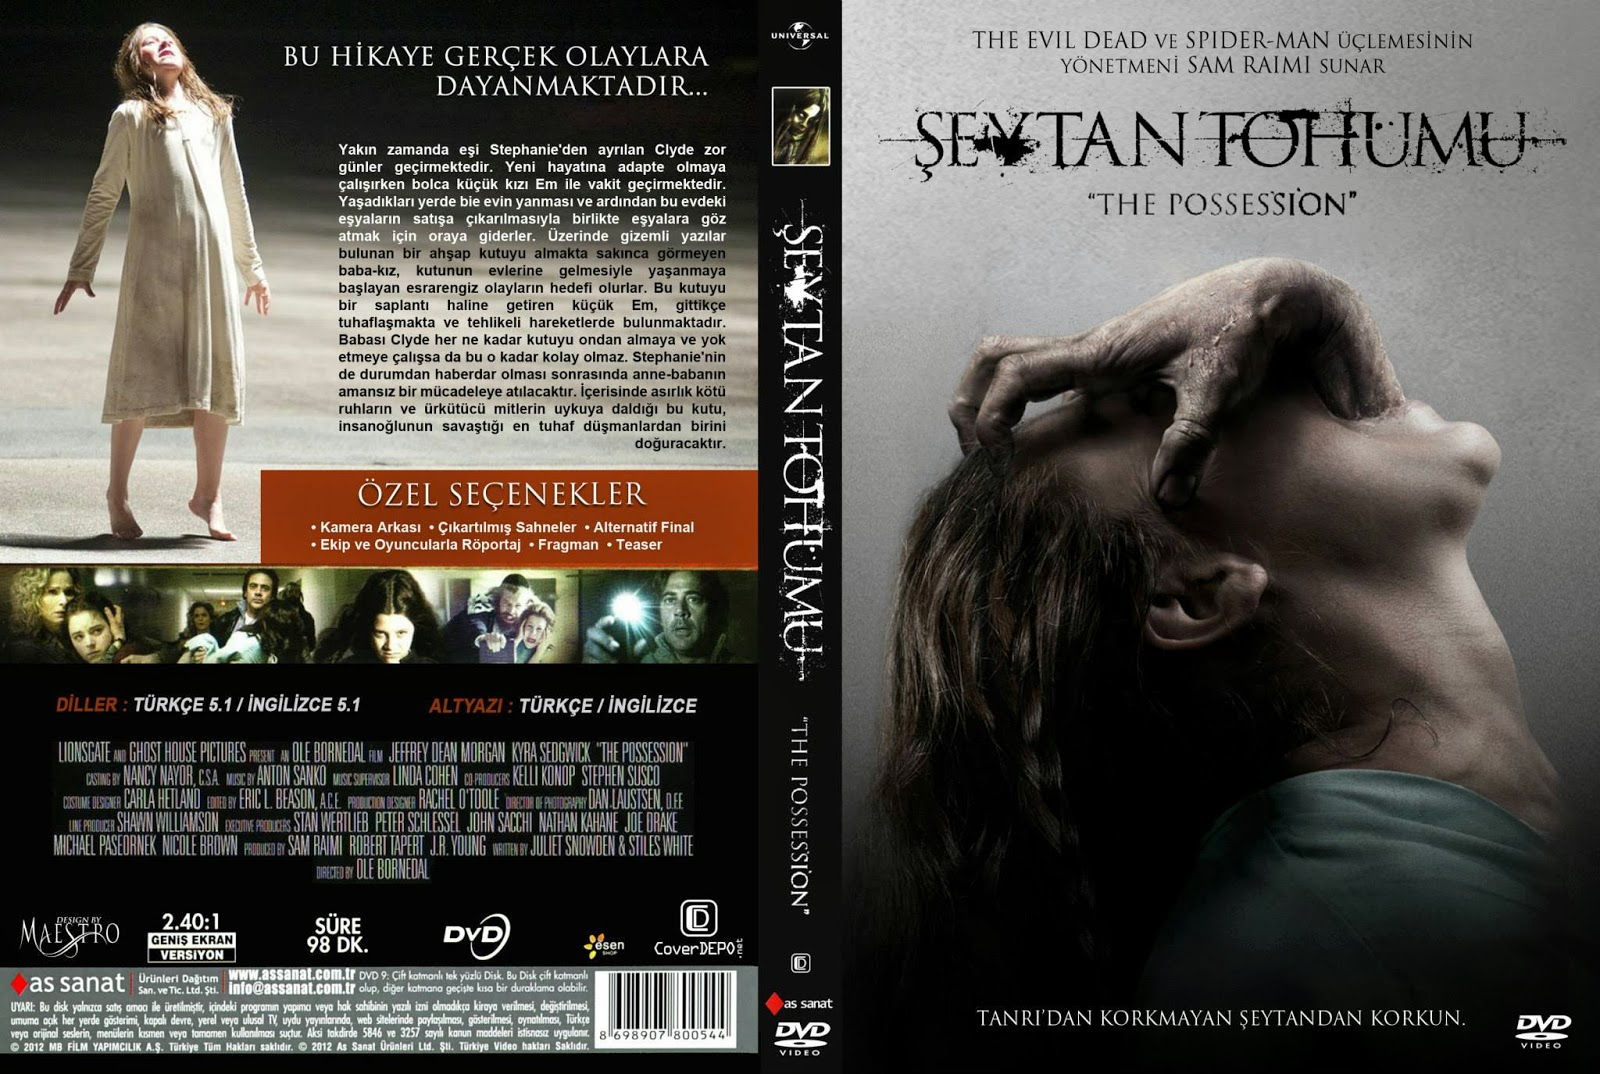 Şeytan Tohumu - The Possession 2012 Bluray 1080p